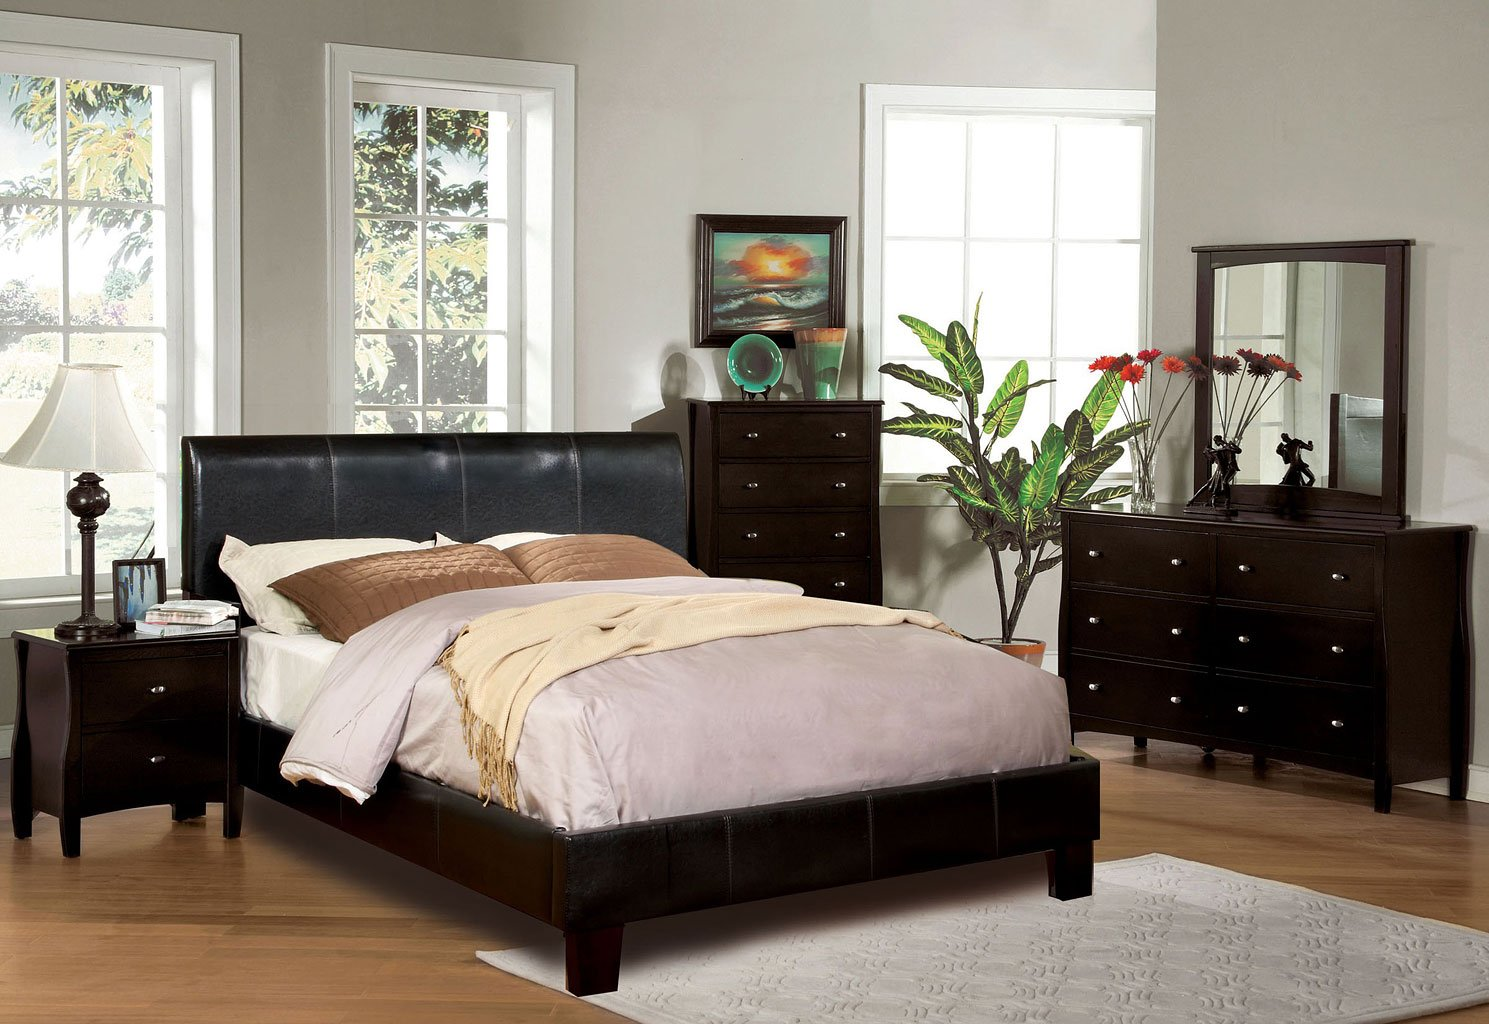 Milano Bedroom Set W/ Villa Park Bed Furniture Of America